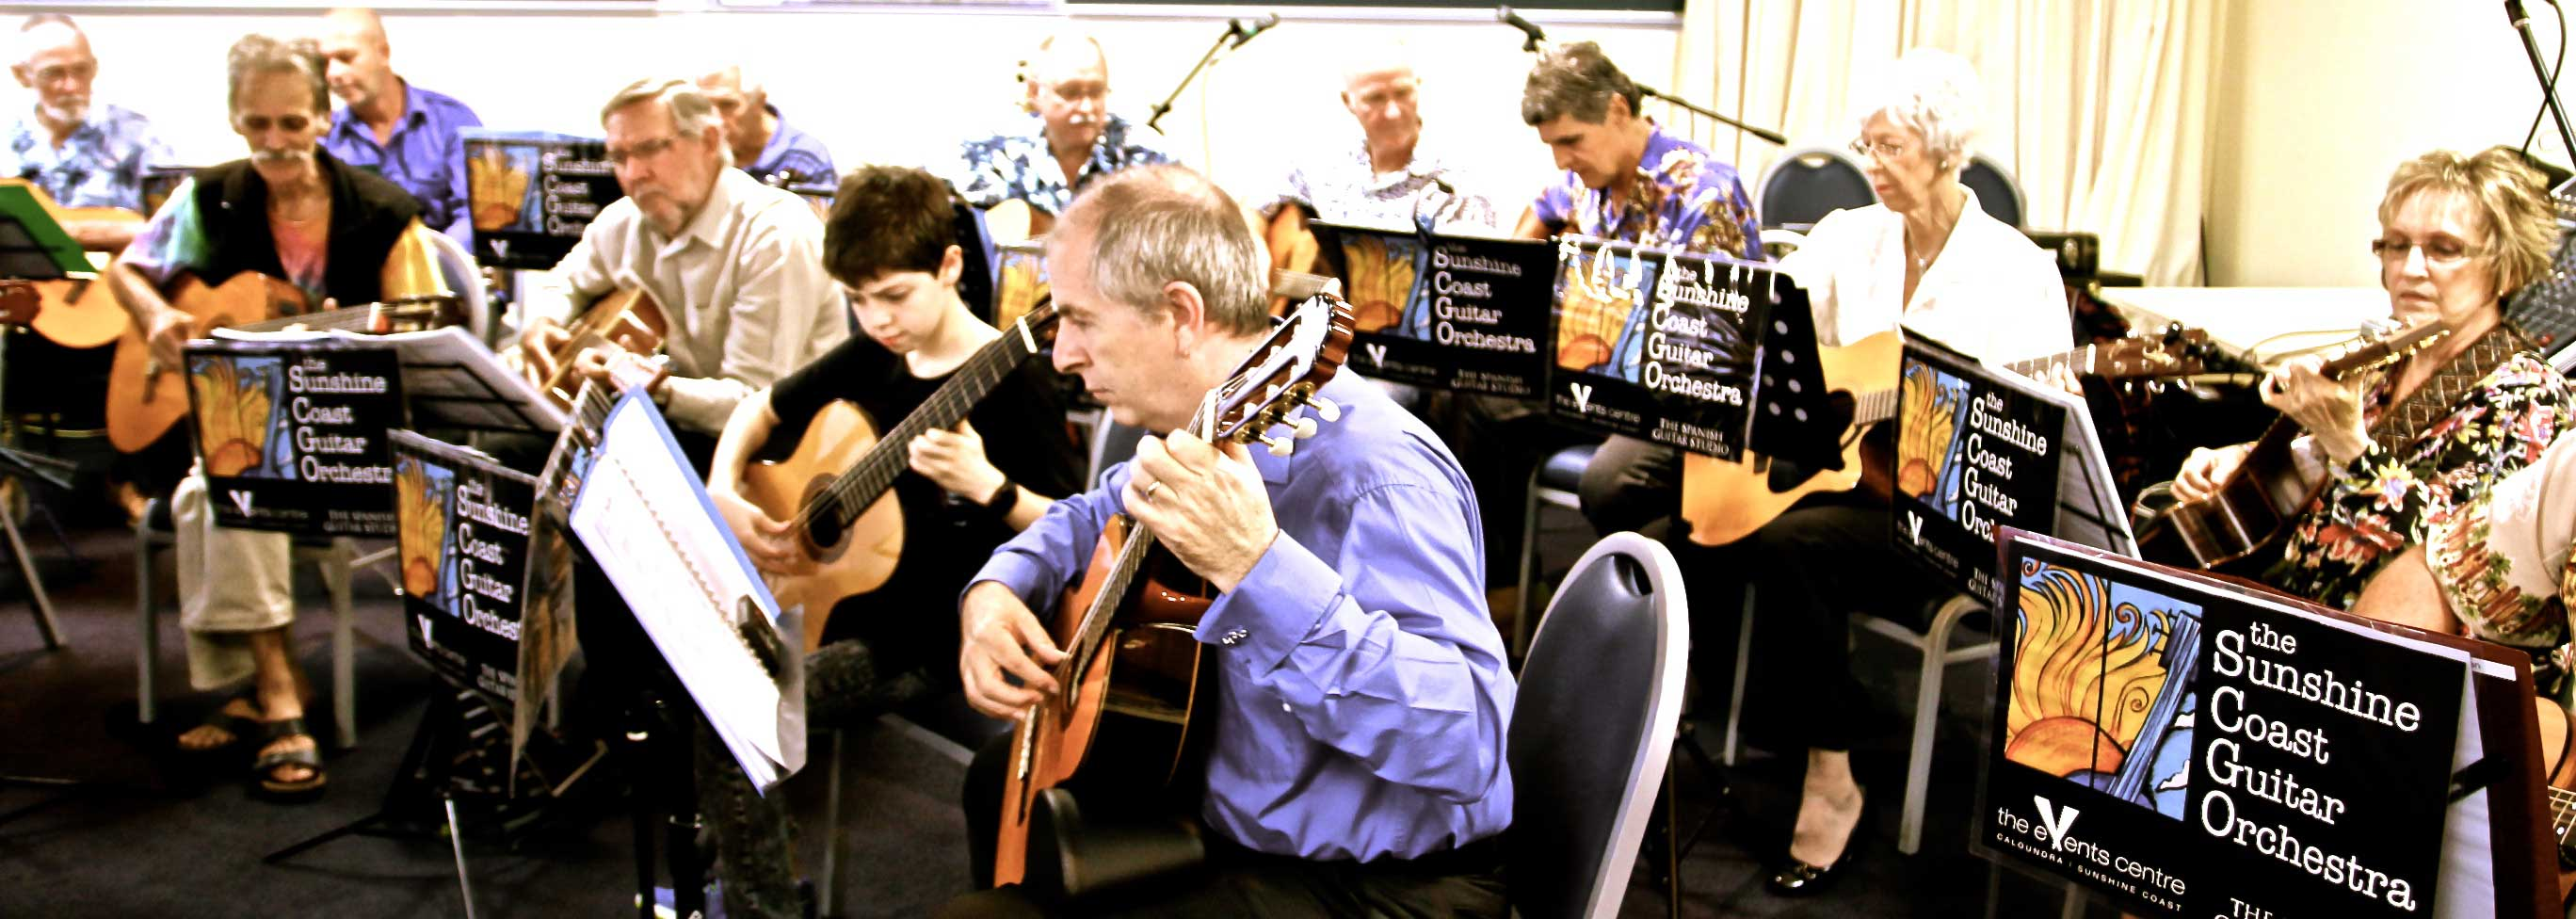 Sunshine Coast Guitar Orchestra